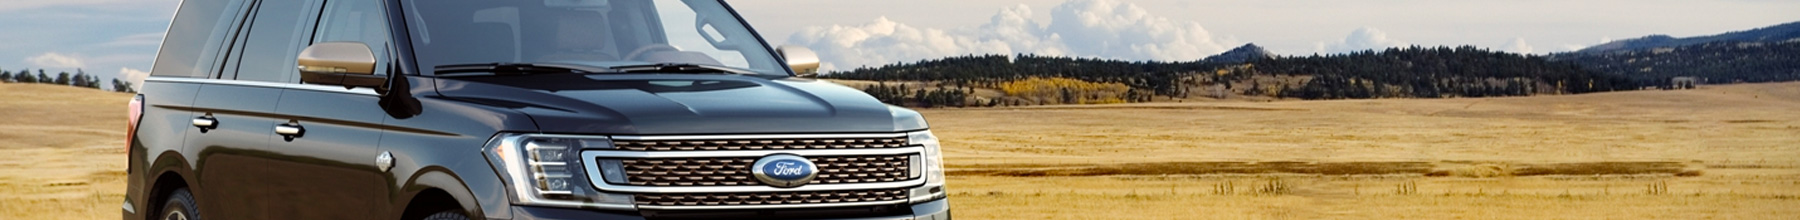 Ford Expedition 2020 Banner1